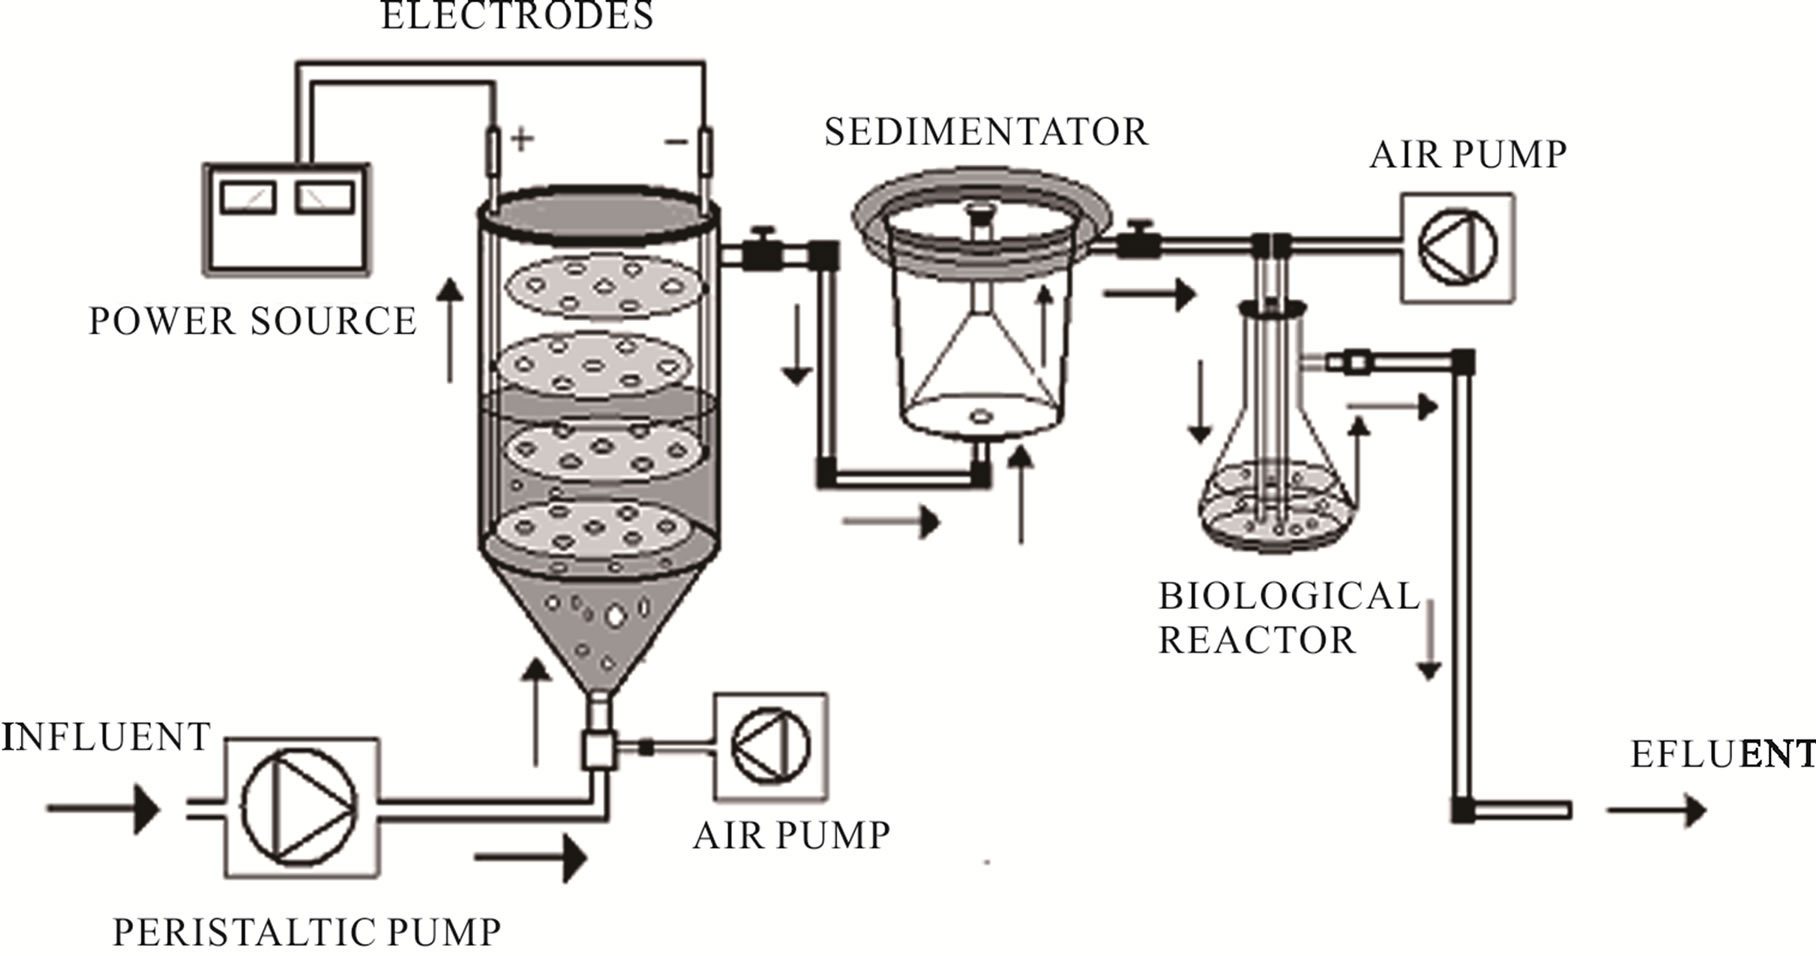 effect of chytriomyces hyalinus on industrial wastewater